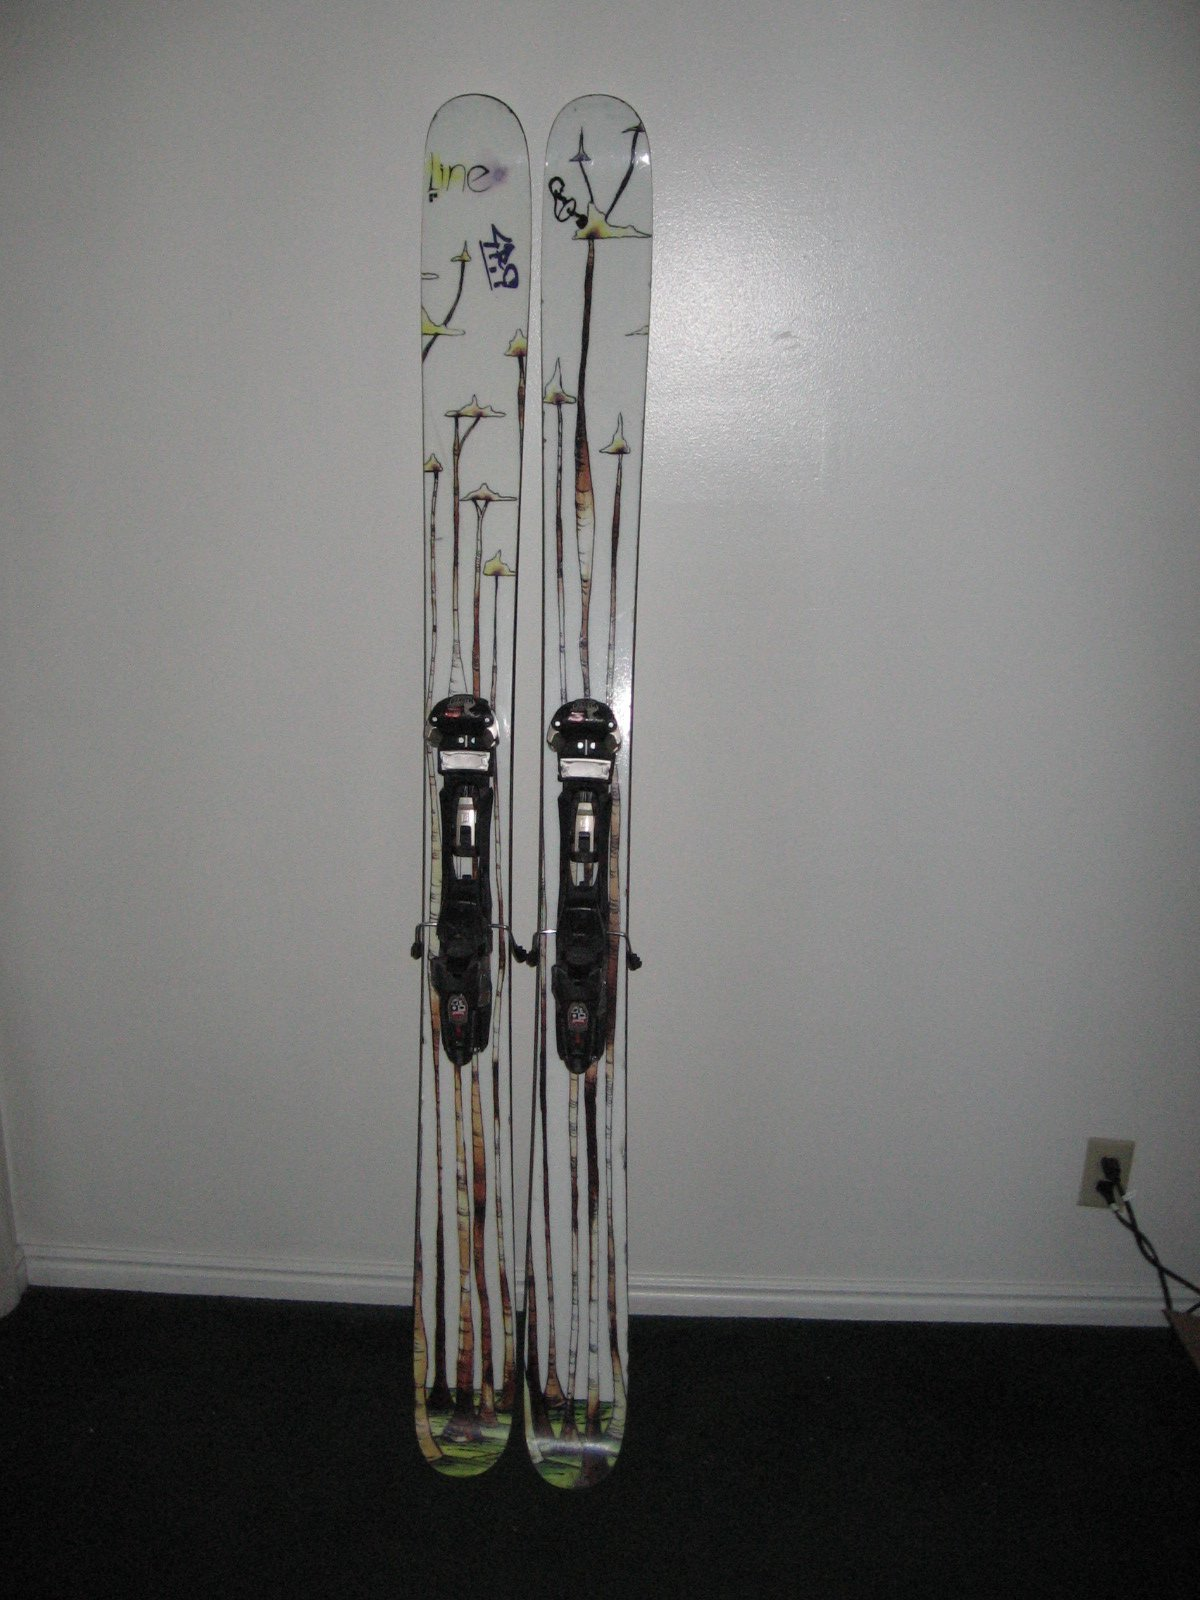 Here is a picture of the skis